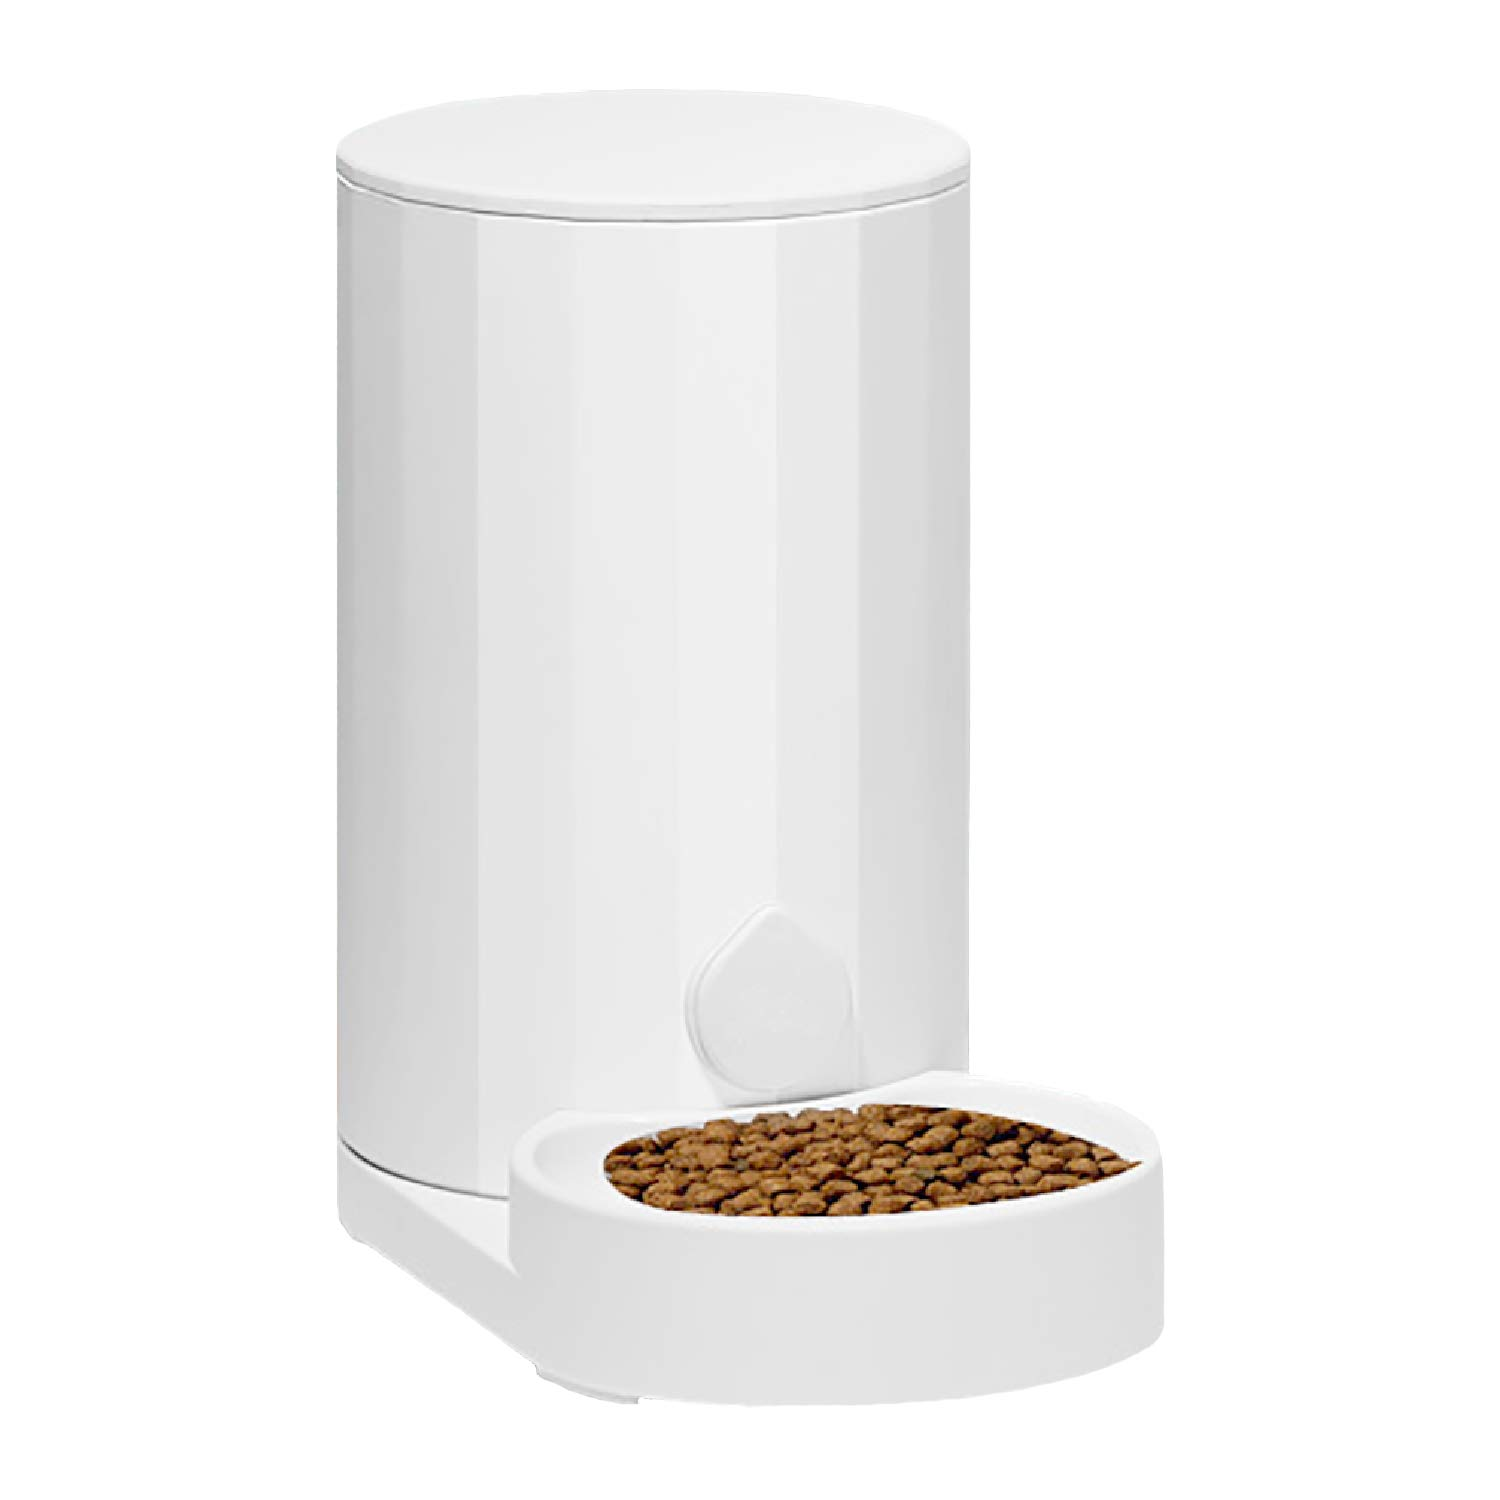 FUNLULA FUNLULA FUNLULA Automatic Water Dispenser and Manual Cat Food Feeder in Set for Small Medium Large Dog Cats Puppy Kitten Pet Self-Dispensing Big Capacity Bowl